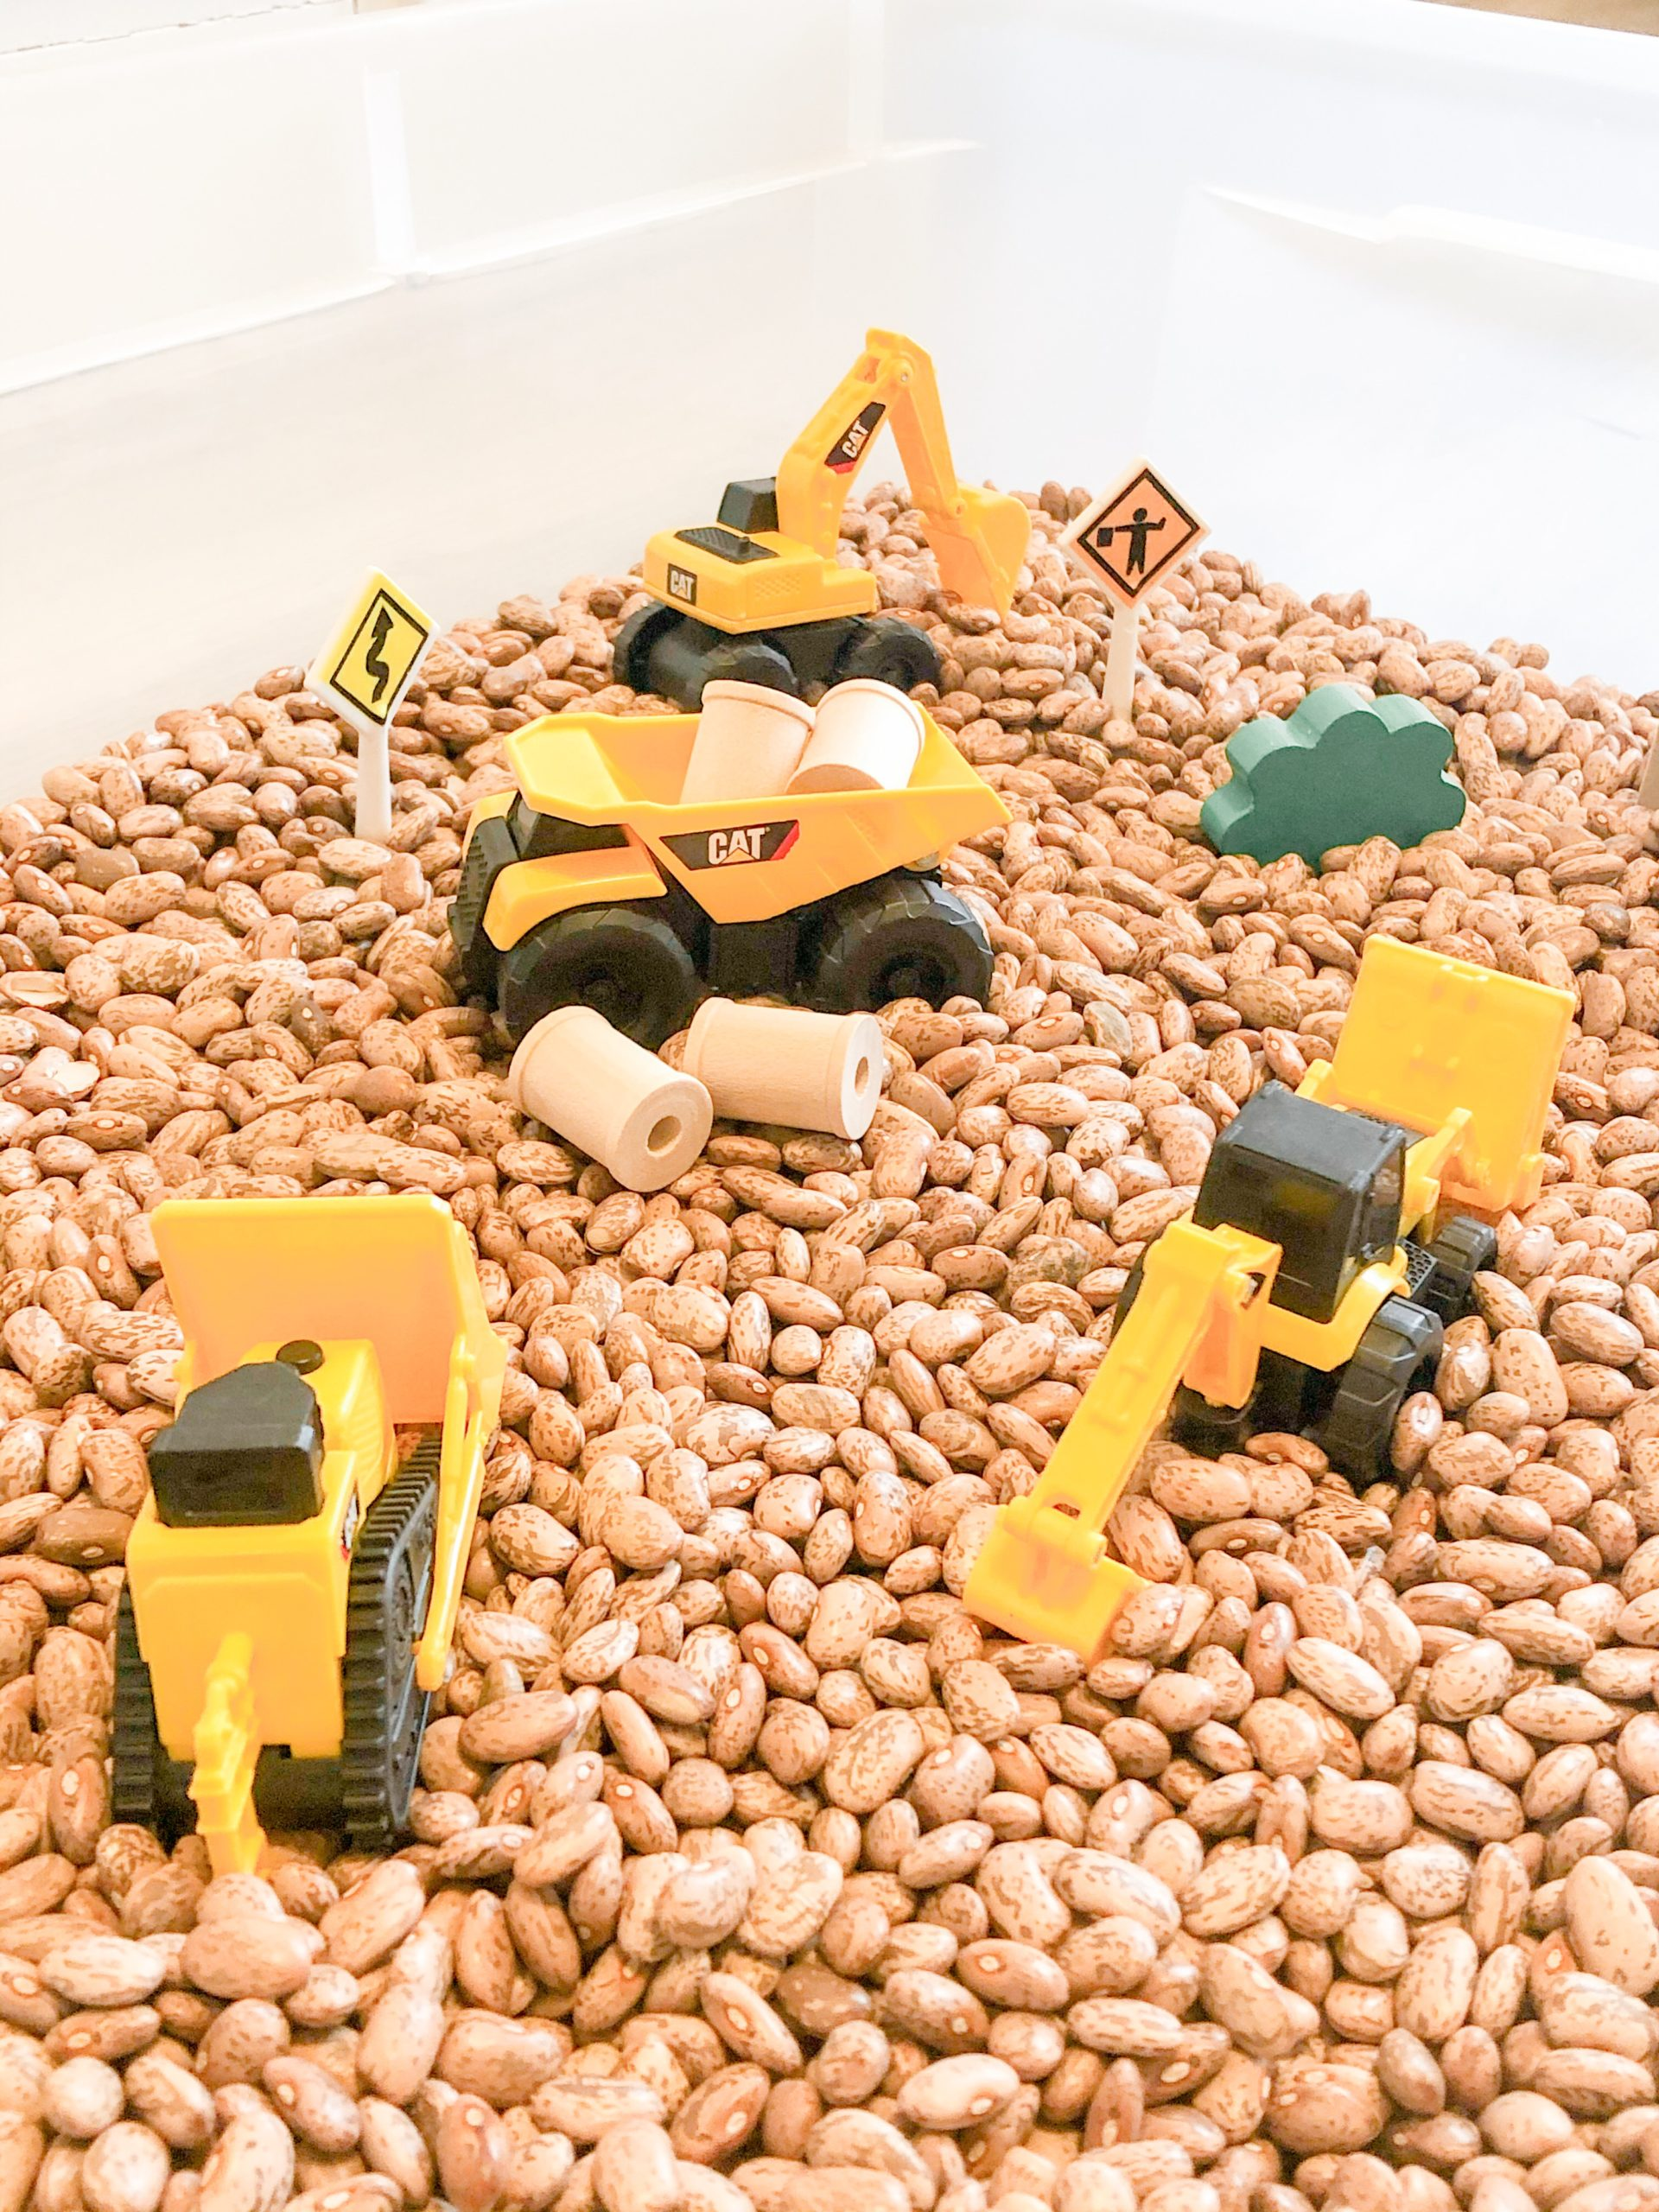 Sensory bin with construction trucks and vehicles. Sensory activity for toddlers.